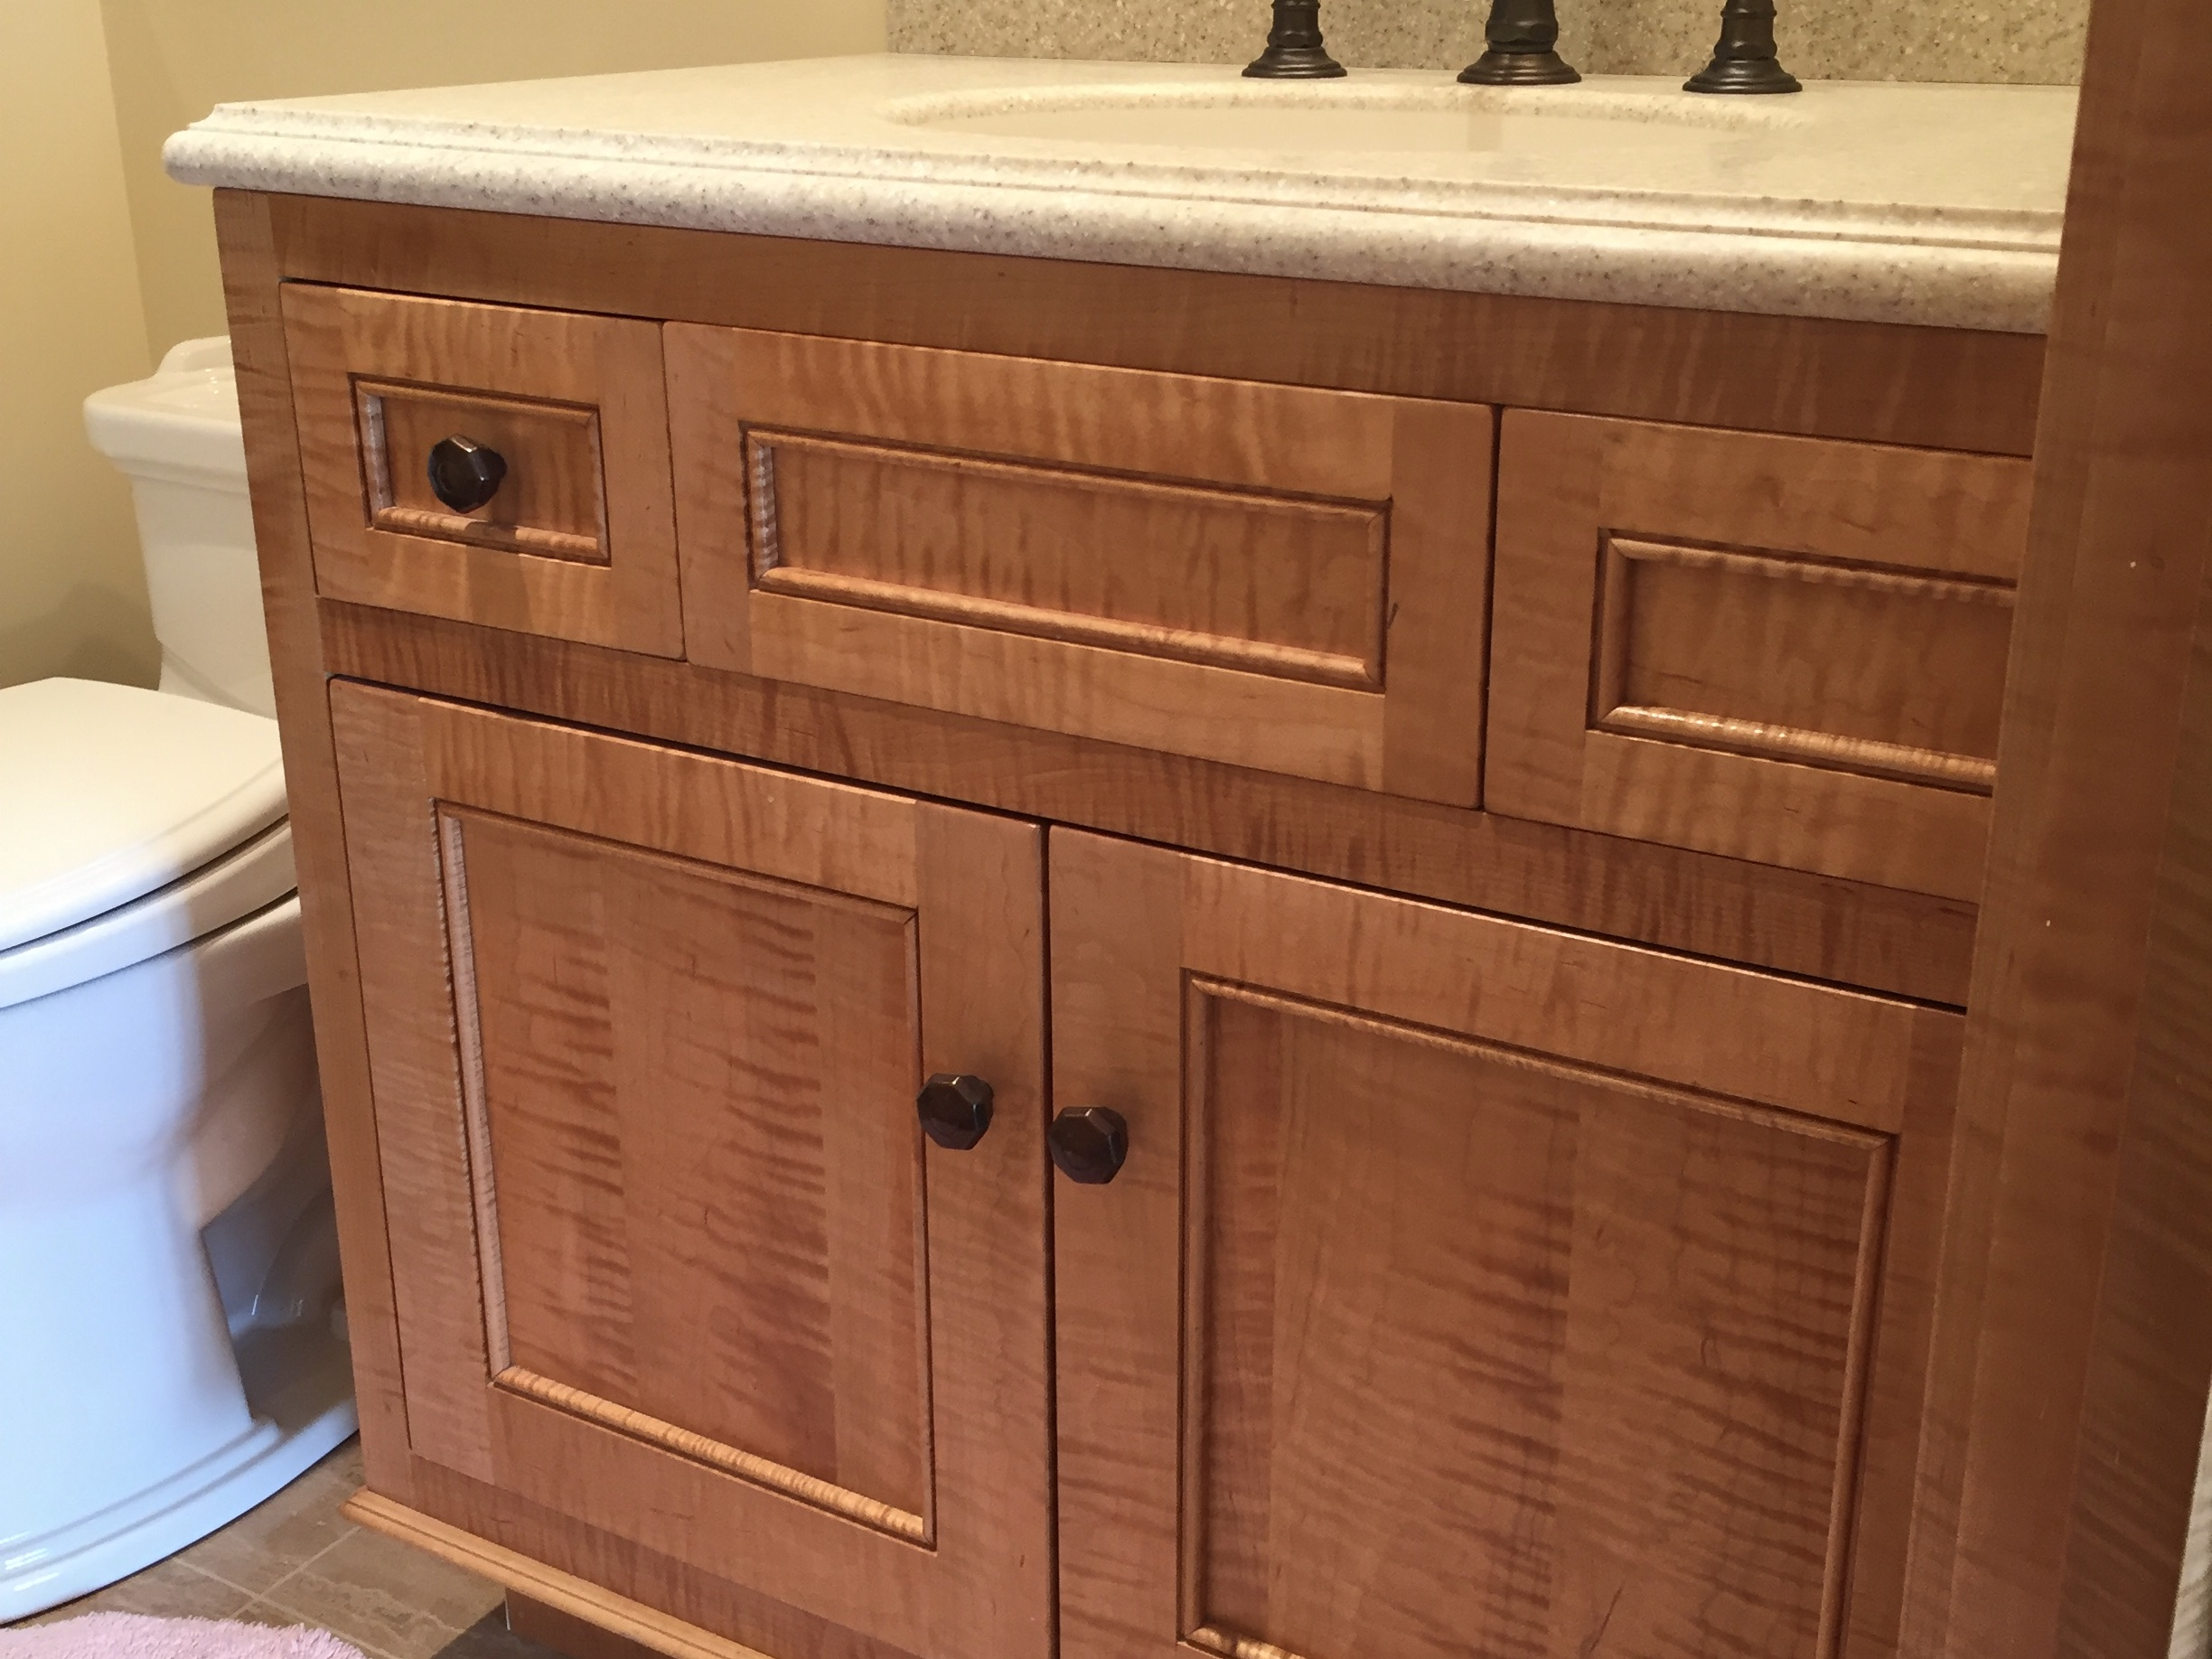 Figured maple Bathroom Vanity